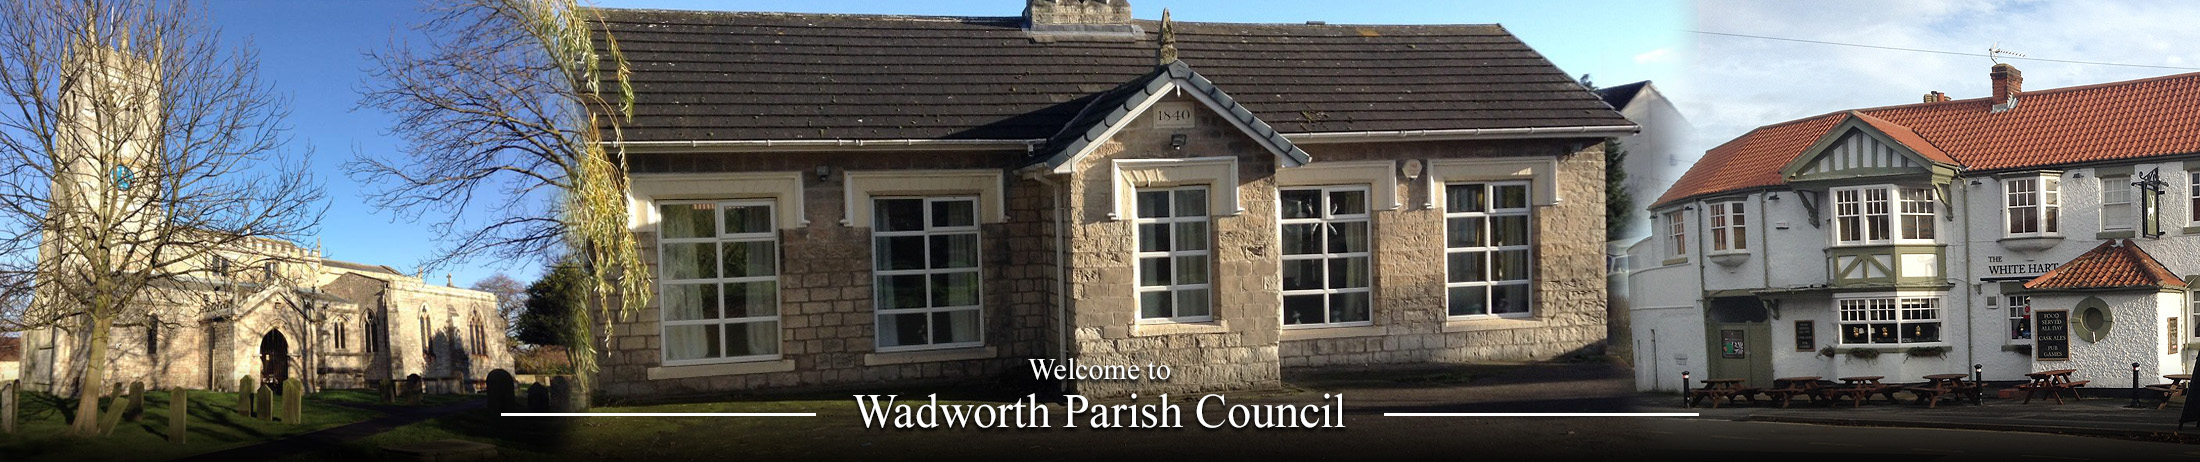 Header Image for Wadworth Parish Council